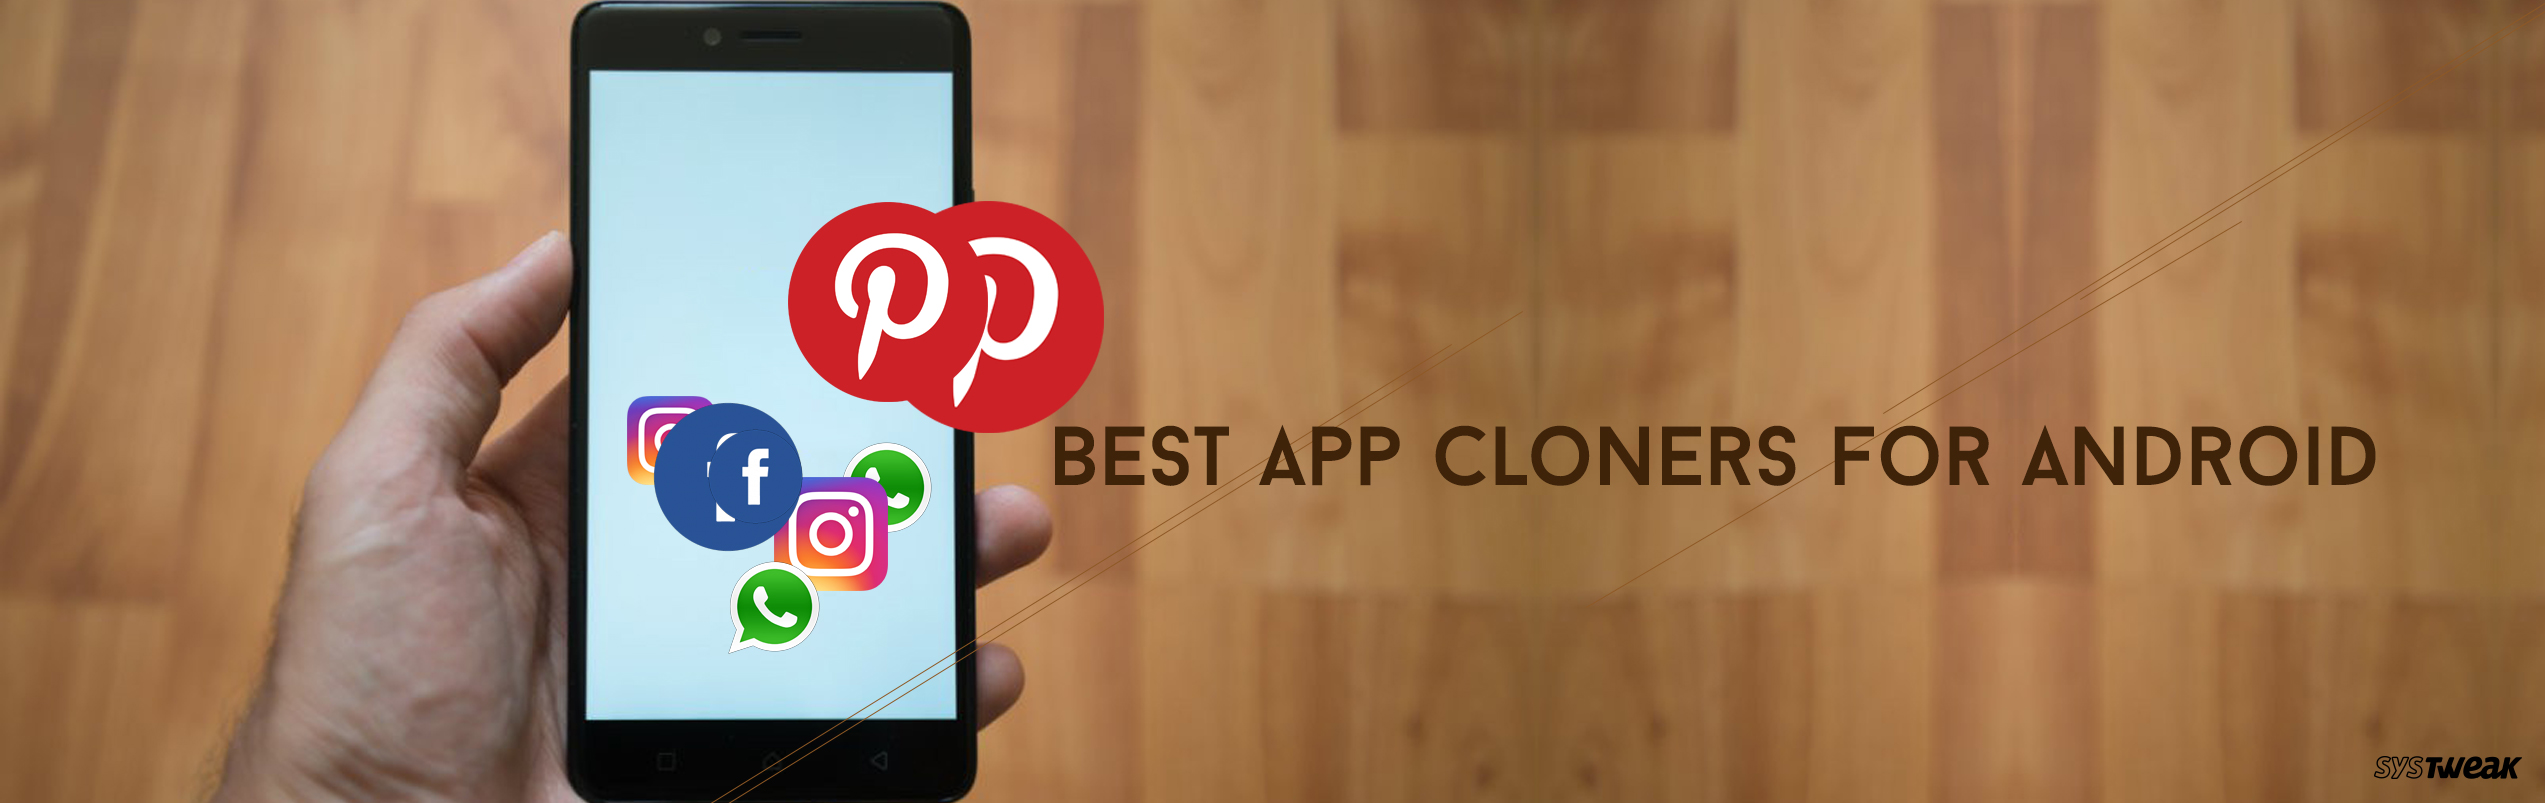 10 Best App Cloners For Android To Set Up Multiple User Accounts